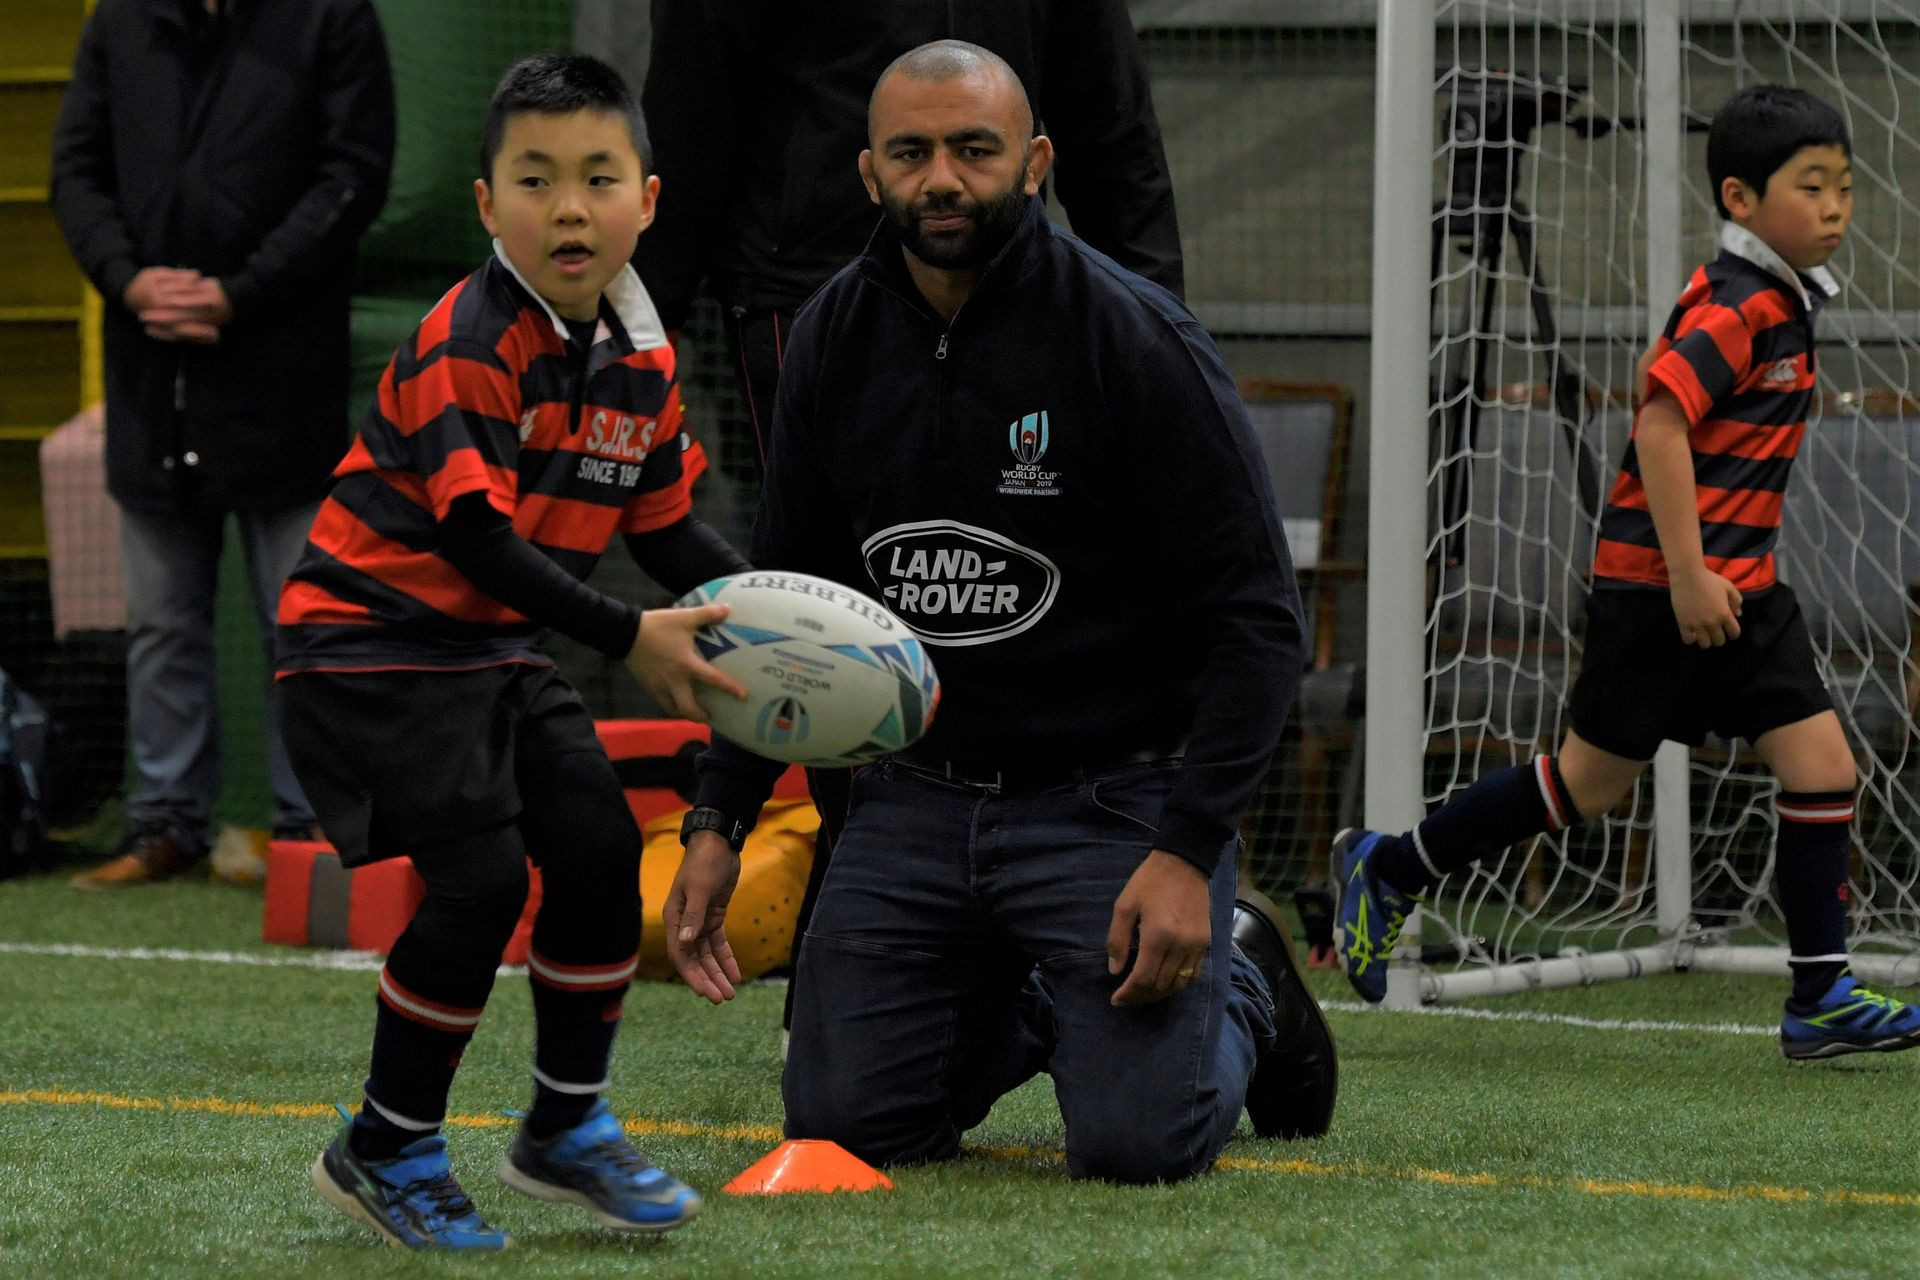 A second series of rugby introduction days have been organised in Japan ©World Rugby